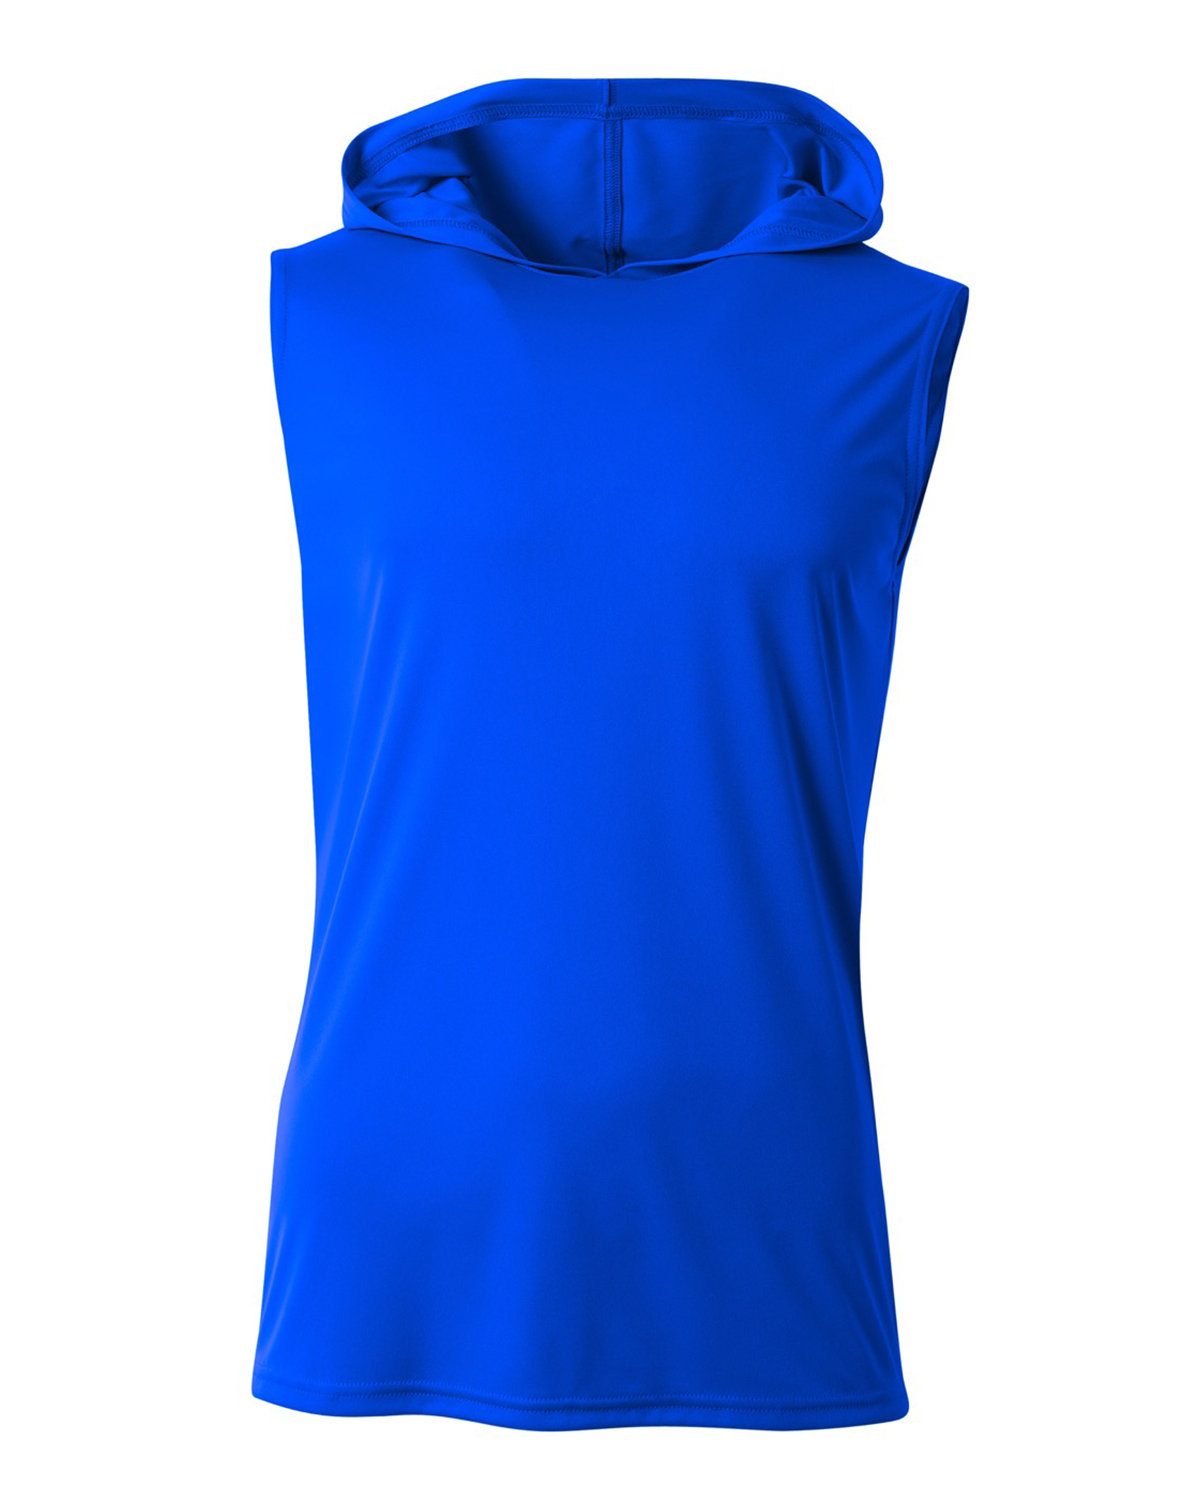 A4 Men's Cooling Performance Sleeveless Hooded T-shirt ROYAL